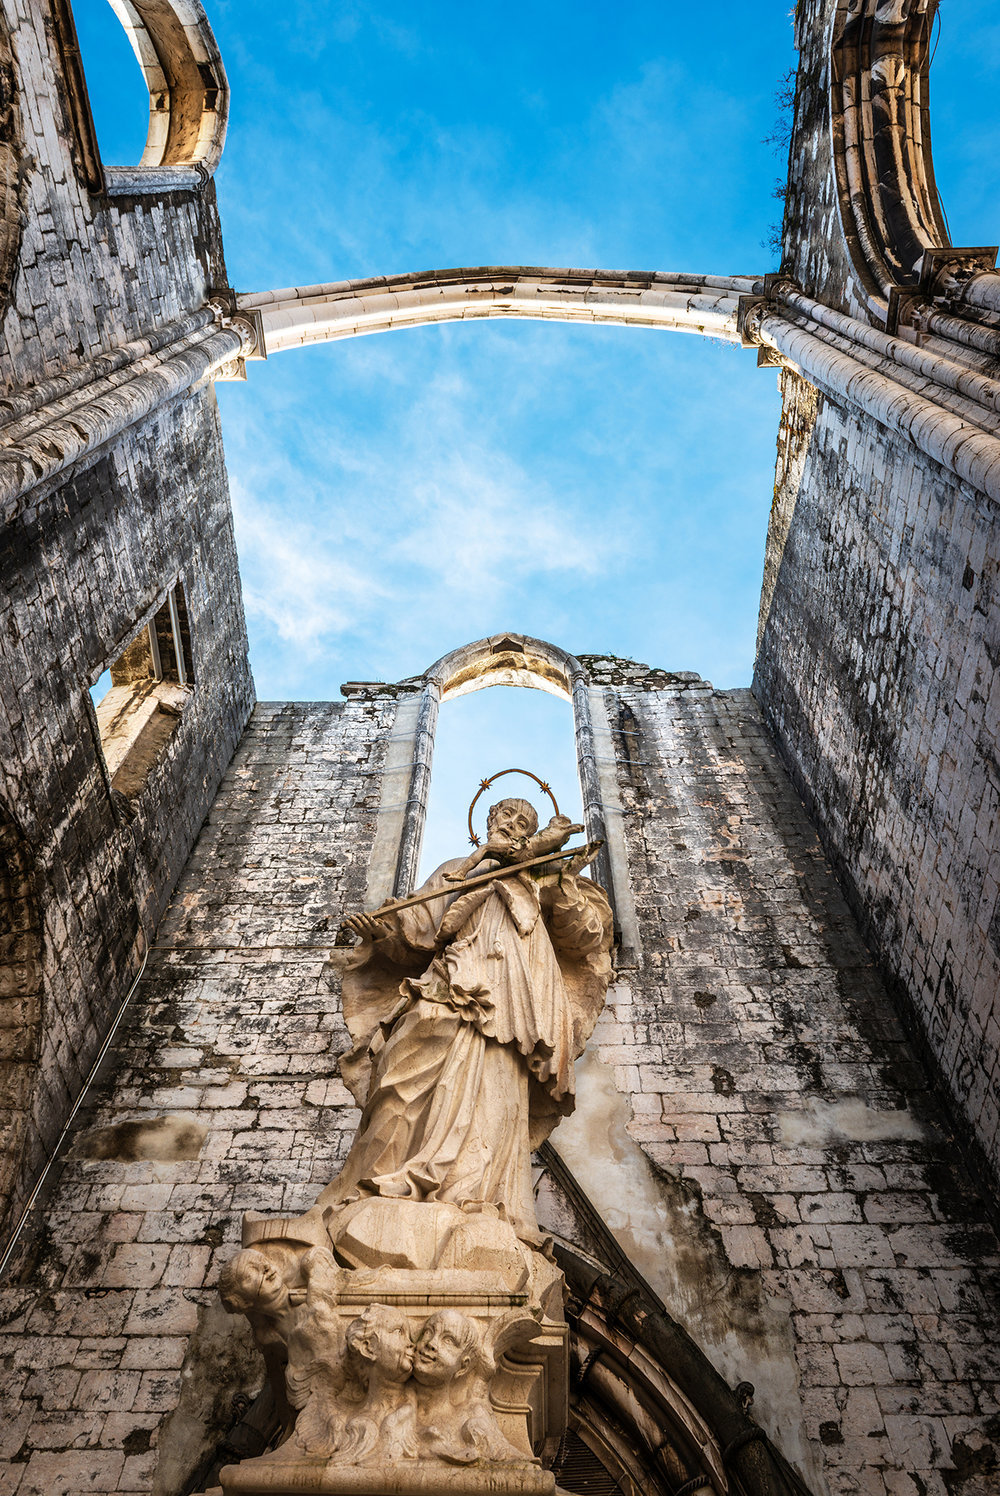 Ruins of the Convent of Our Lady of Mount Carmo